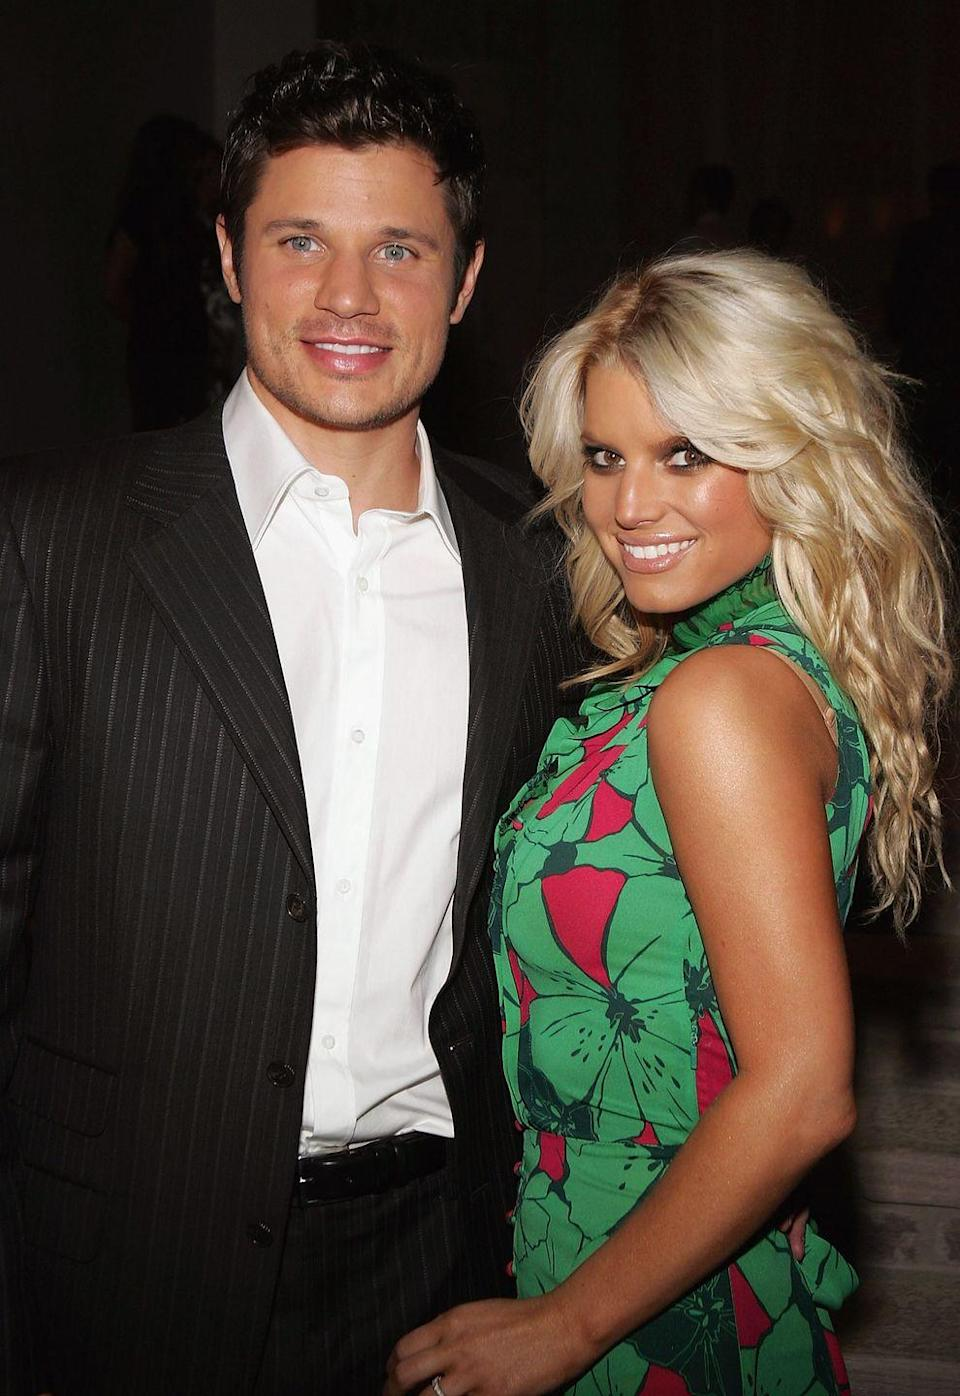 <p>Simpson and Lachey were one of the most iconic pop couples of the 2000s. They were married for about four years, from 2002 to 2006, and co-starred in the reality show <em>Newlyweds: Nick and Jessica </em>together.</p>